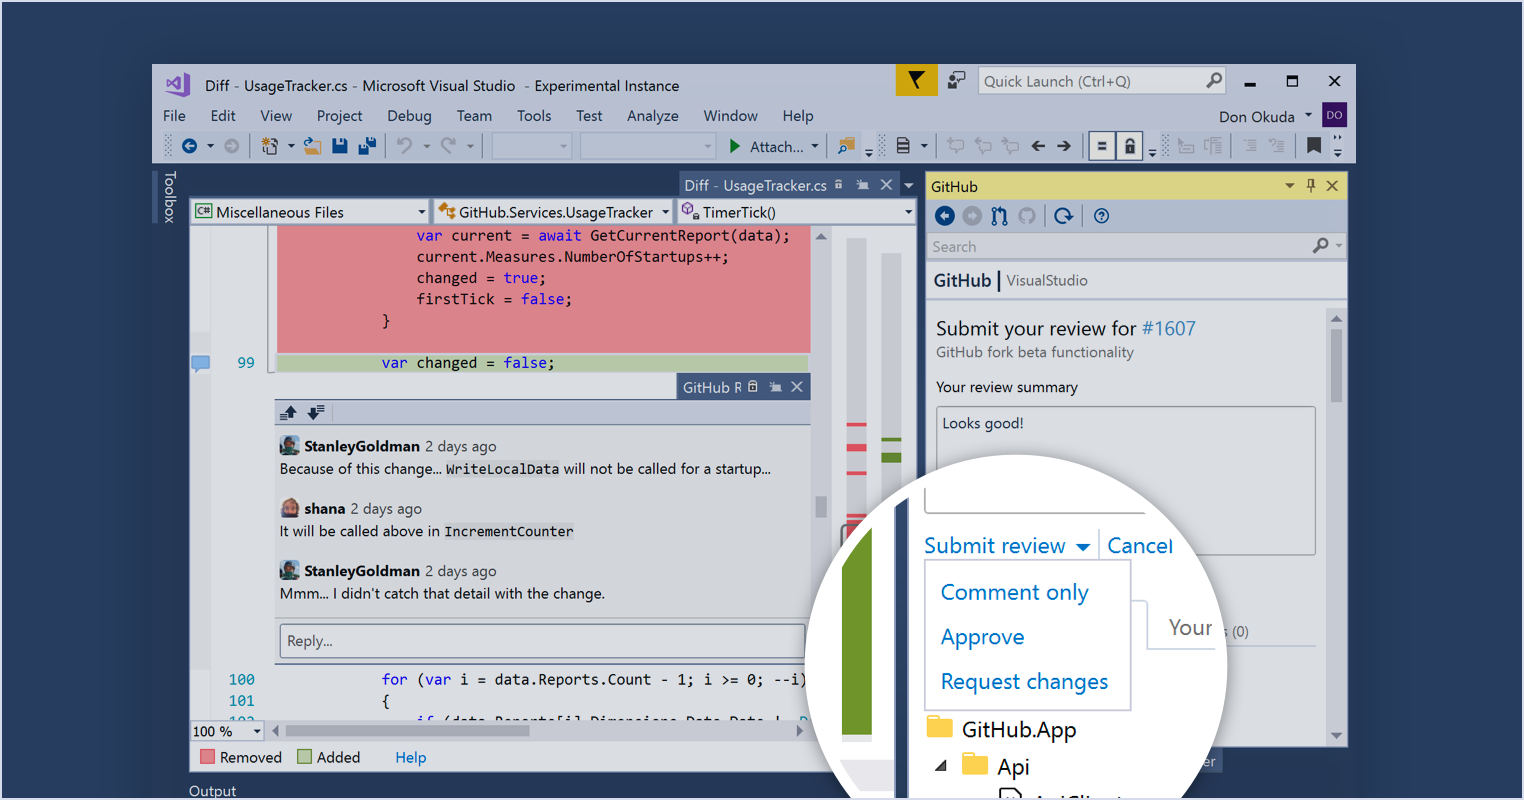 Review pull requests from within Visual Studio - The GitHub Blog